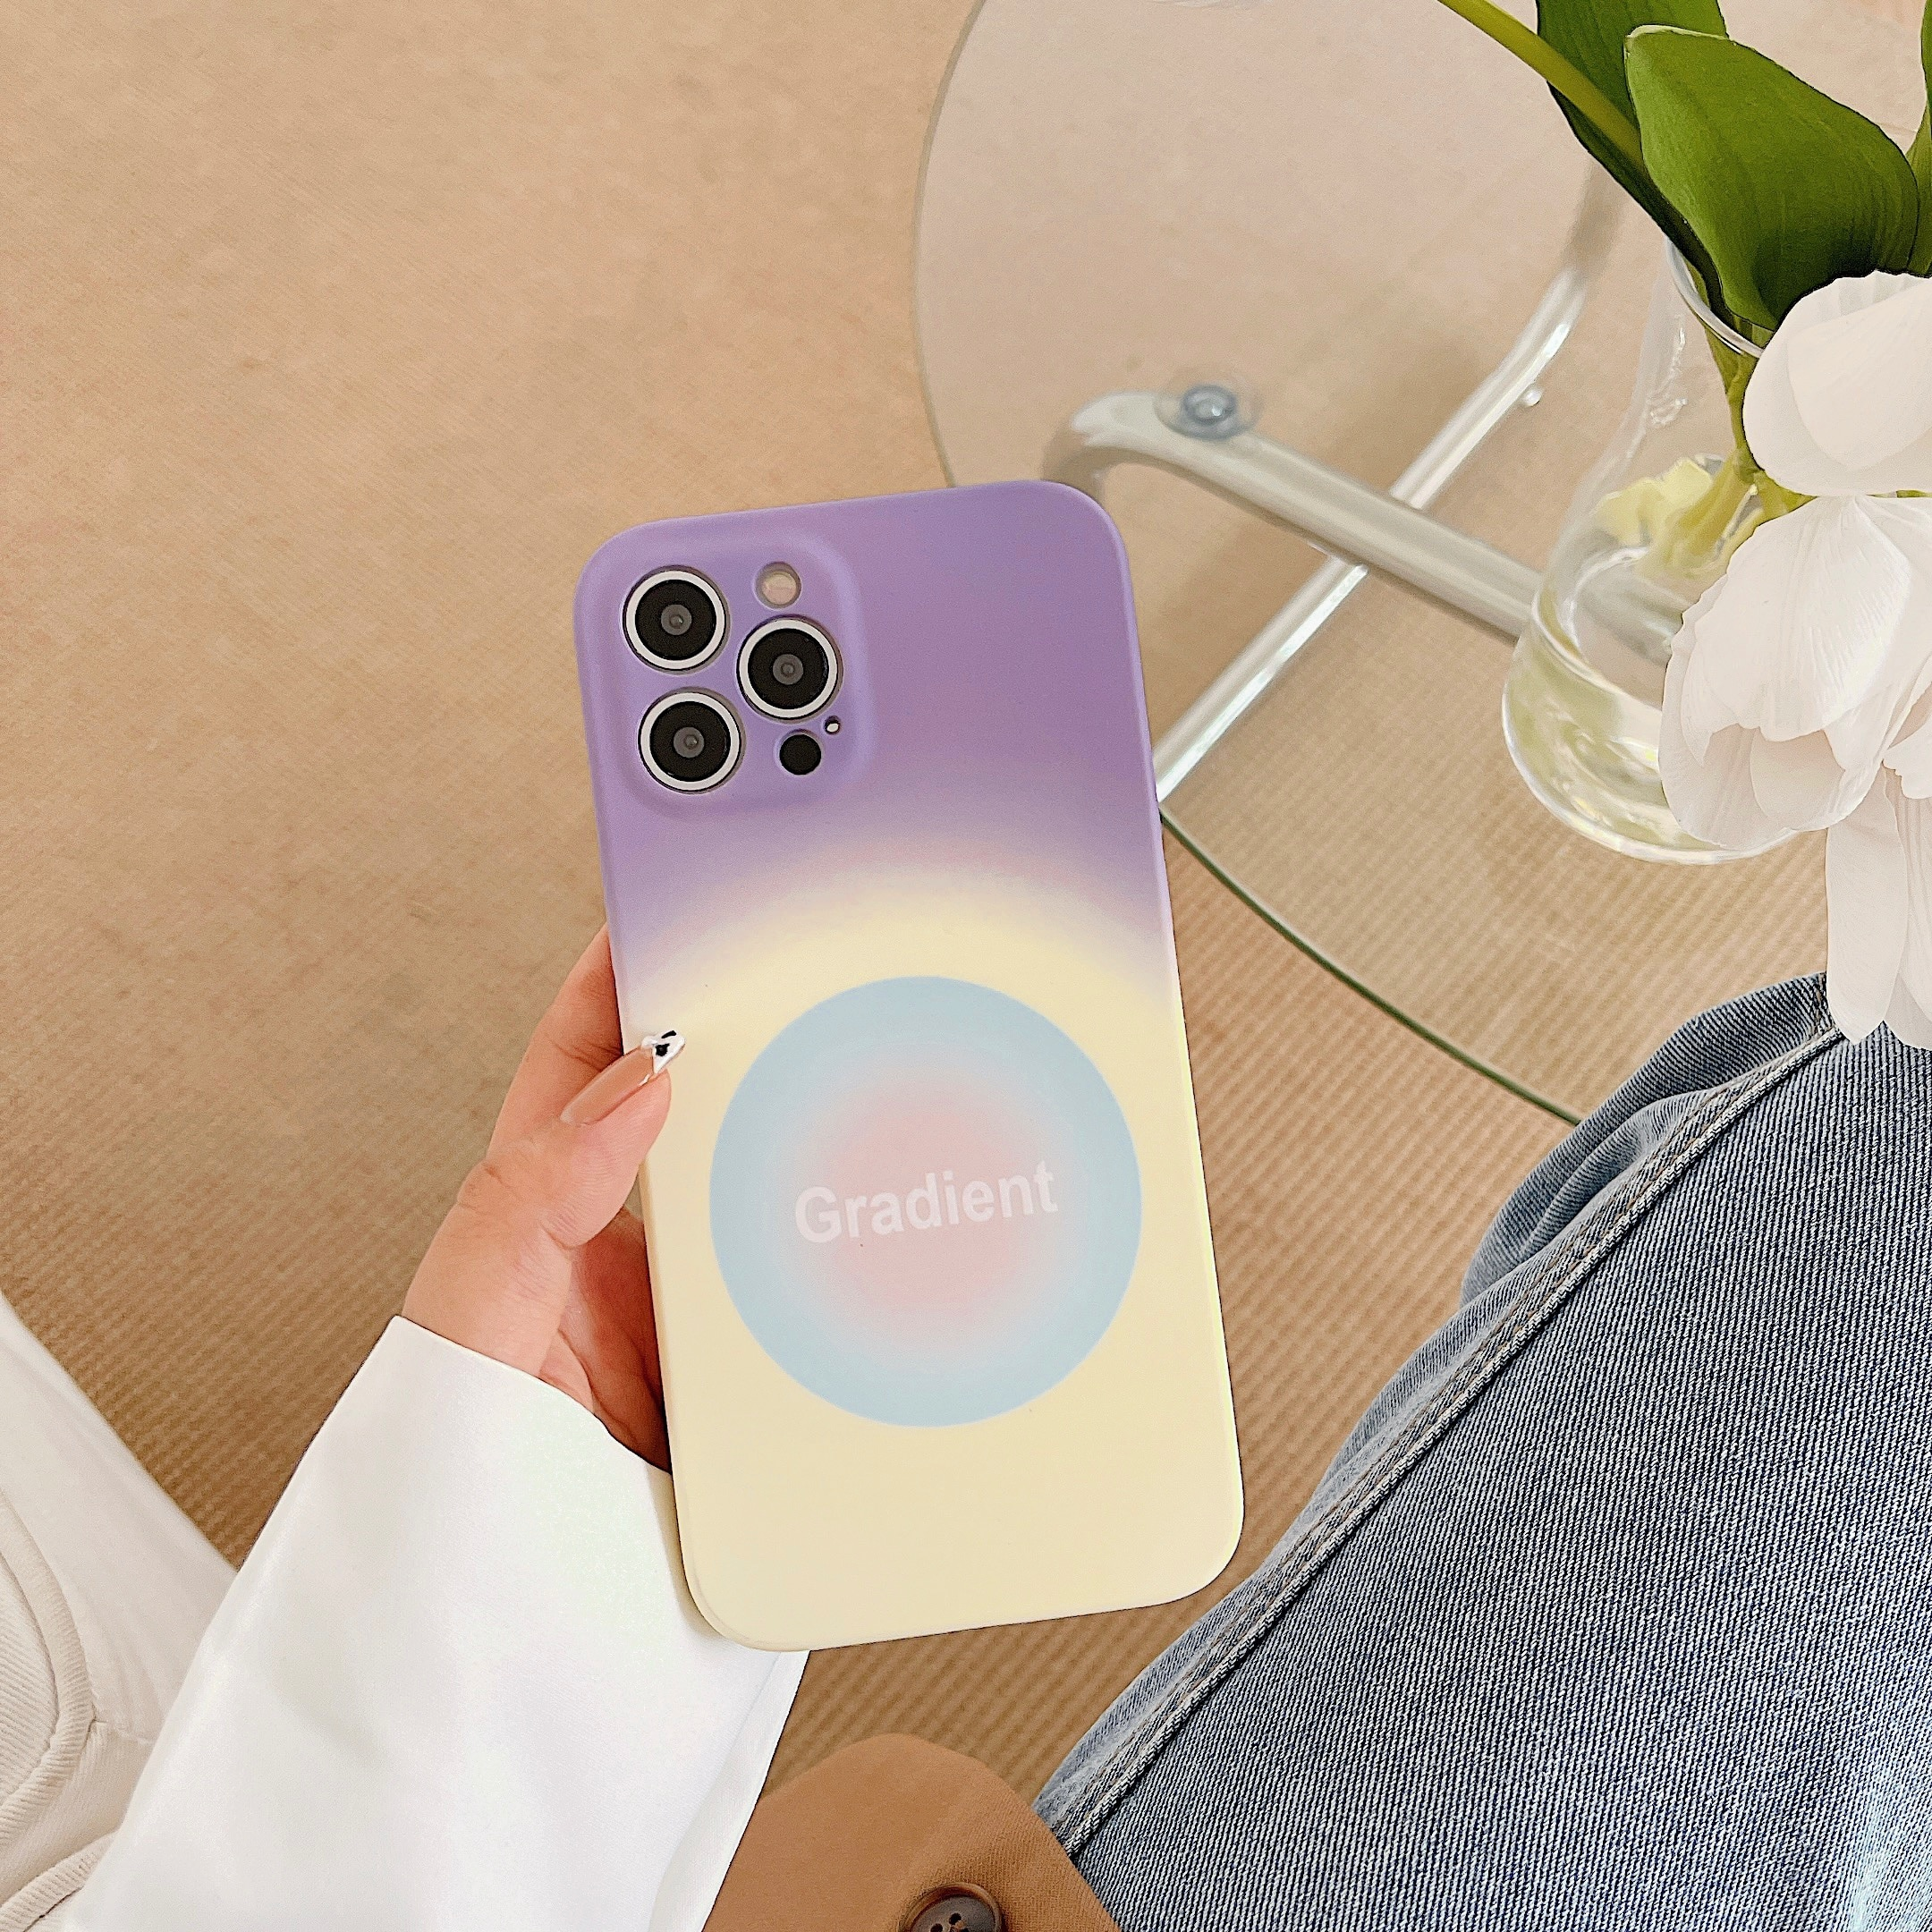 Luxury Brand Girl Boss Phone Case For iPhone 11 12 Xs Pro Max Mini Xr X 7 8 Plus Silicone Four Corne